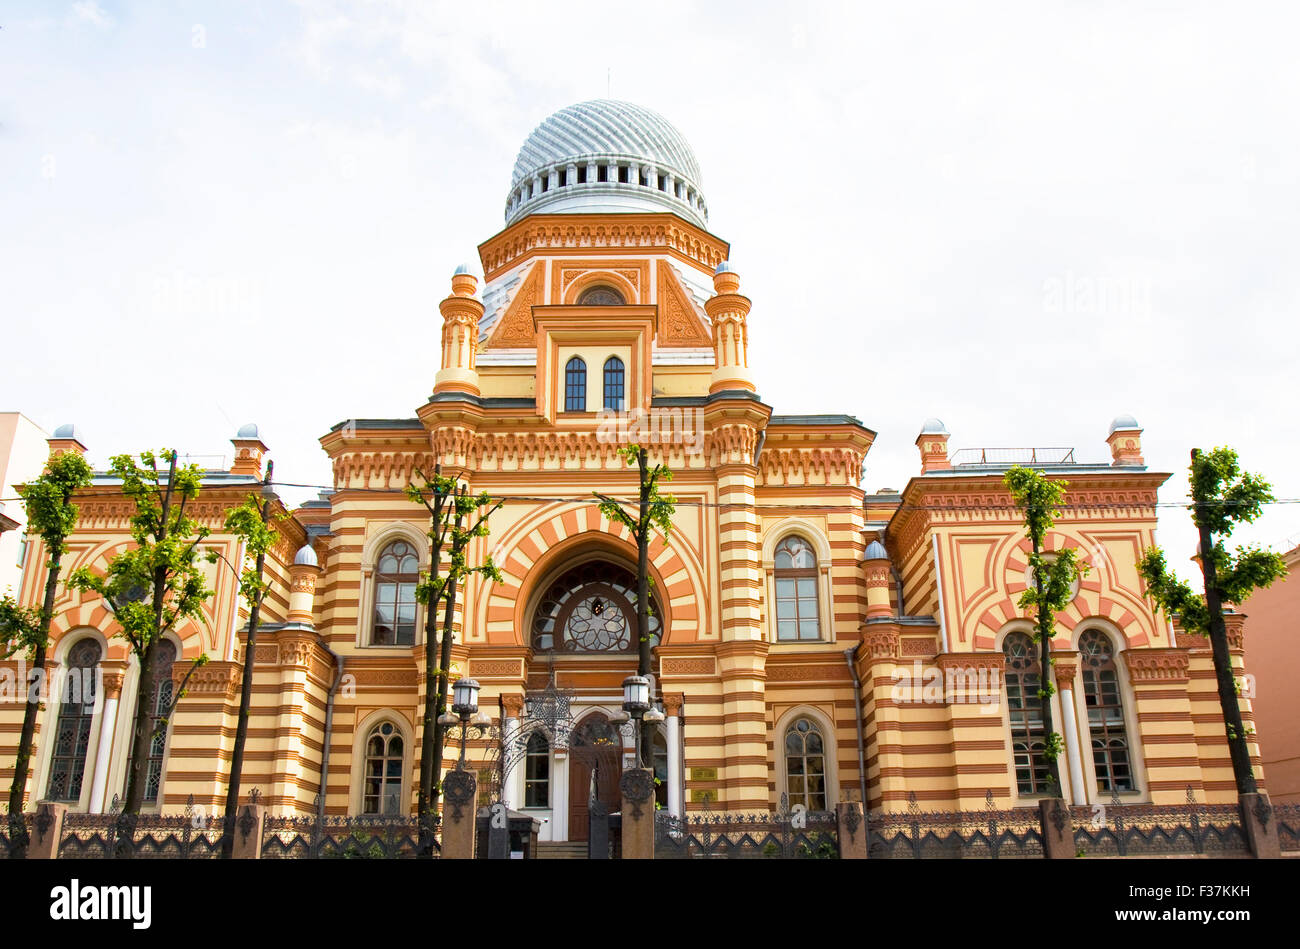 St. Petersburg, Russia - July 14, 2012: Big synagogue. - Stock Image